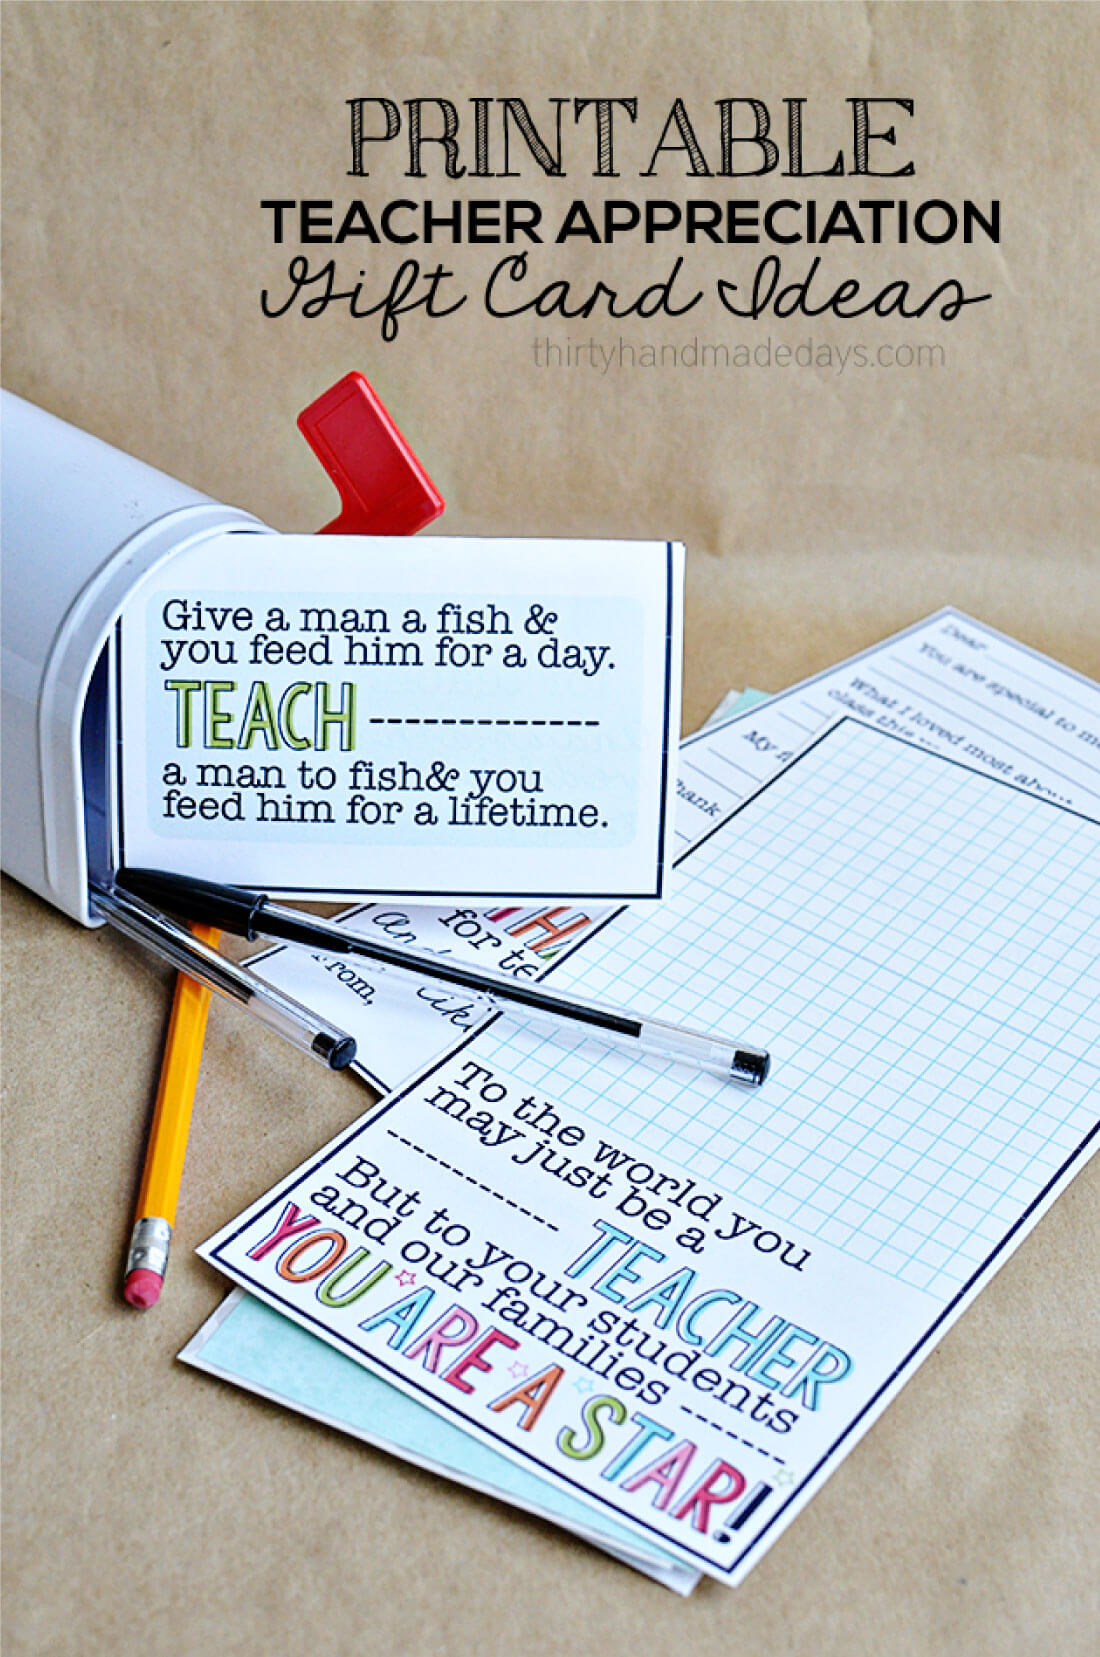 Printable Teacher Appreciation Gift Card Template- have your child fill out and attach a gift card for the ultimate gift!